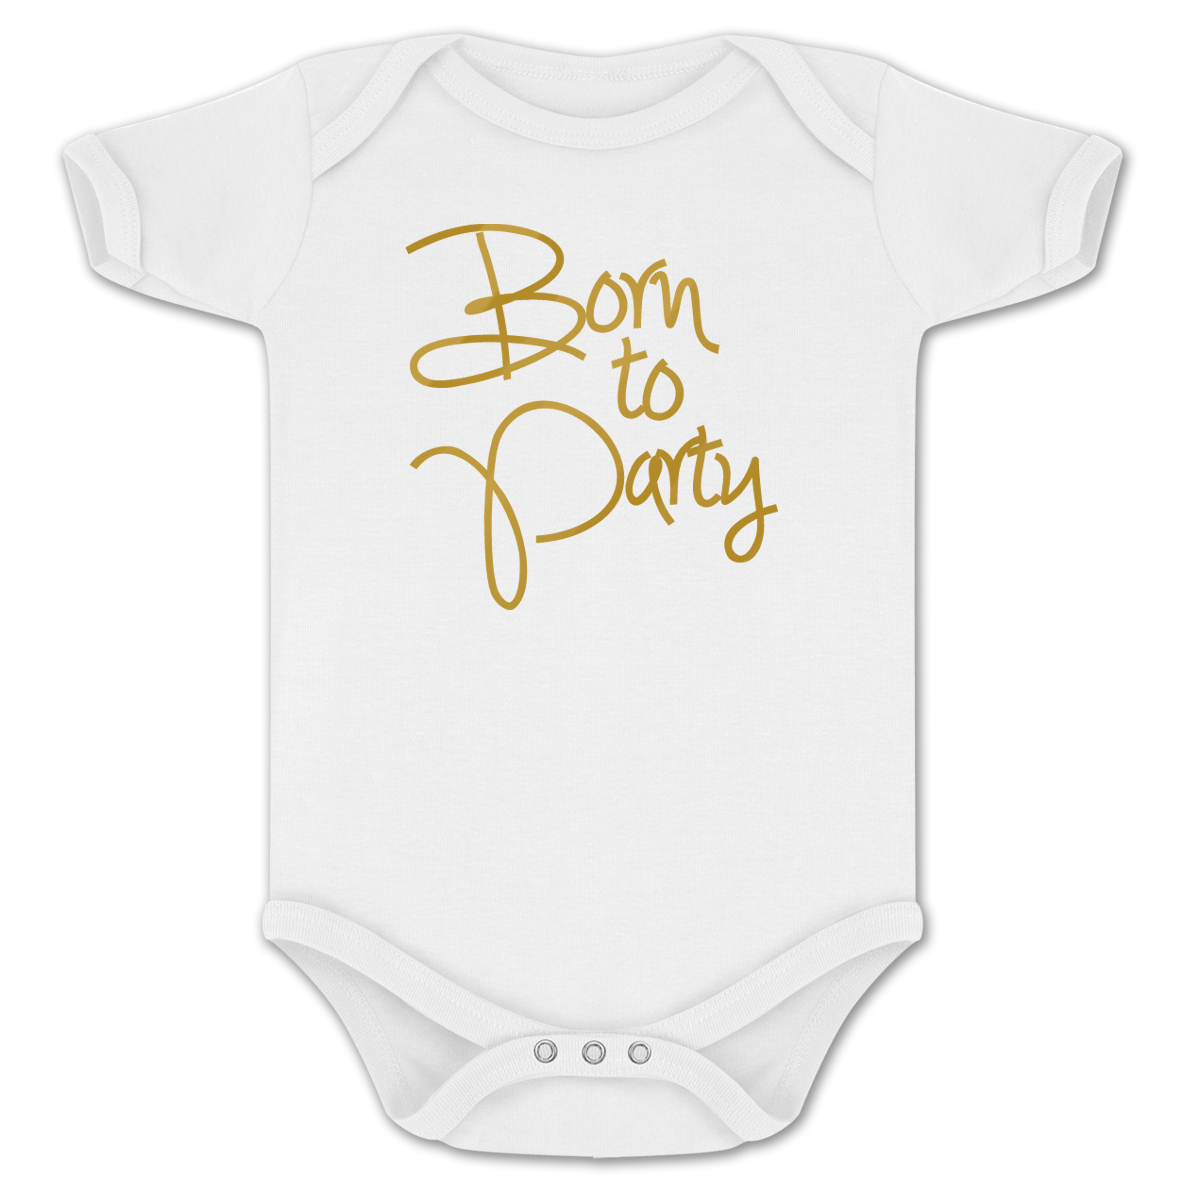 Born To Party Onesie